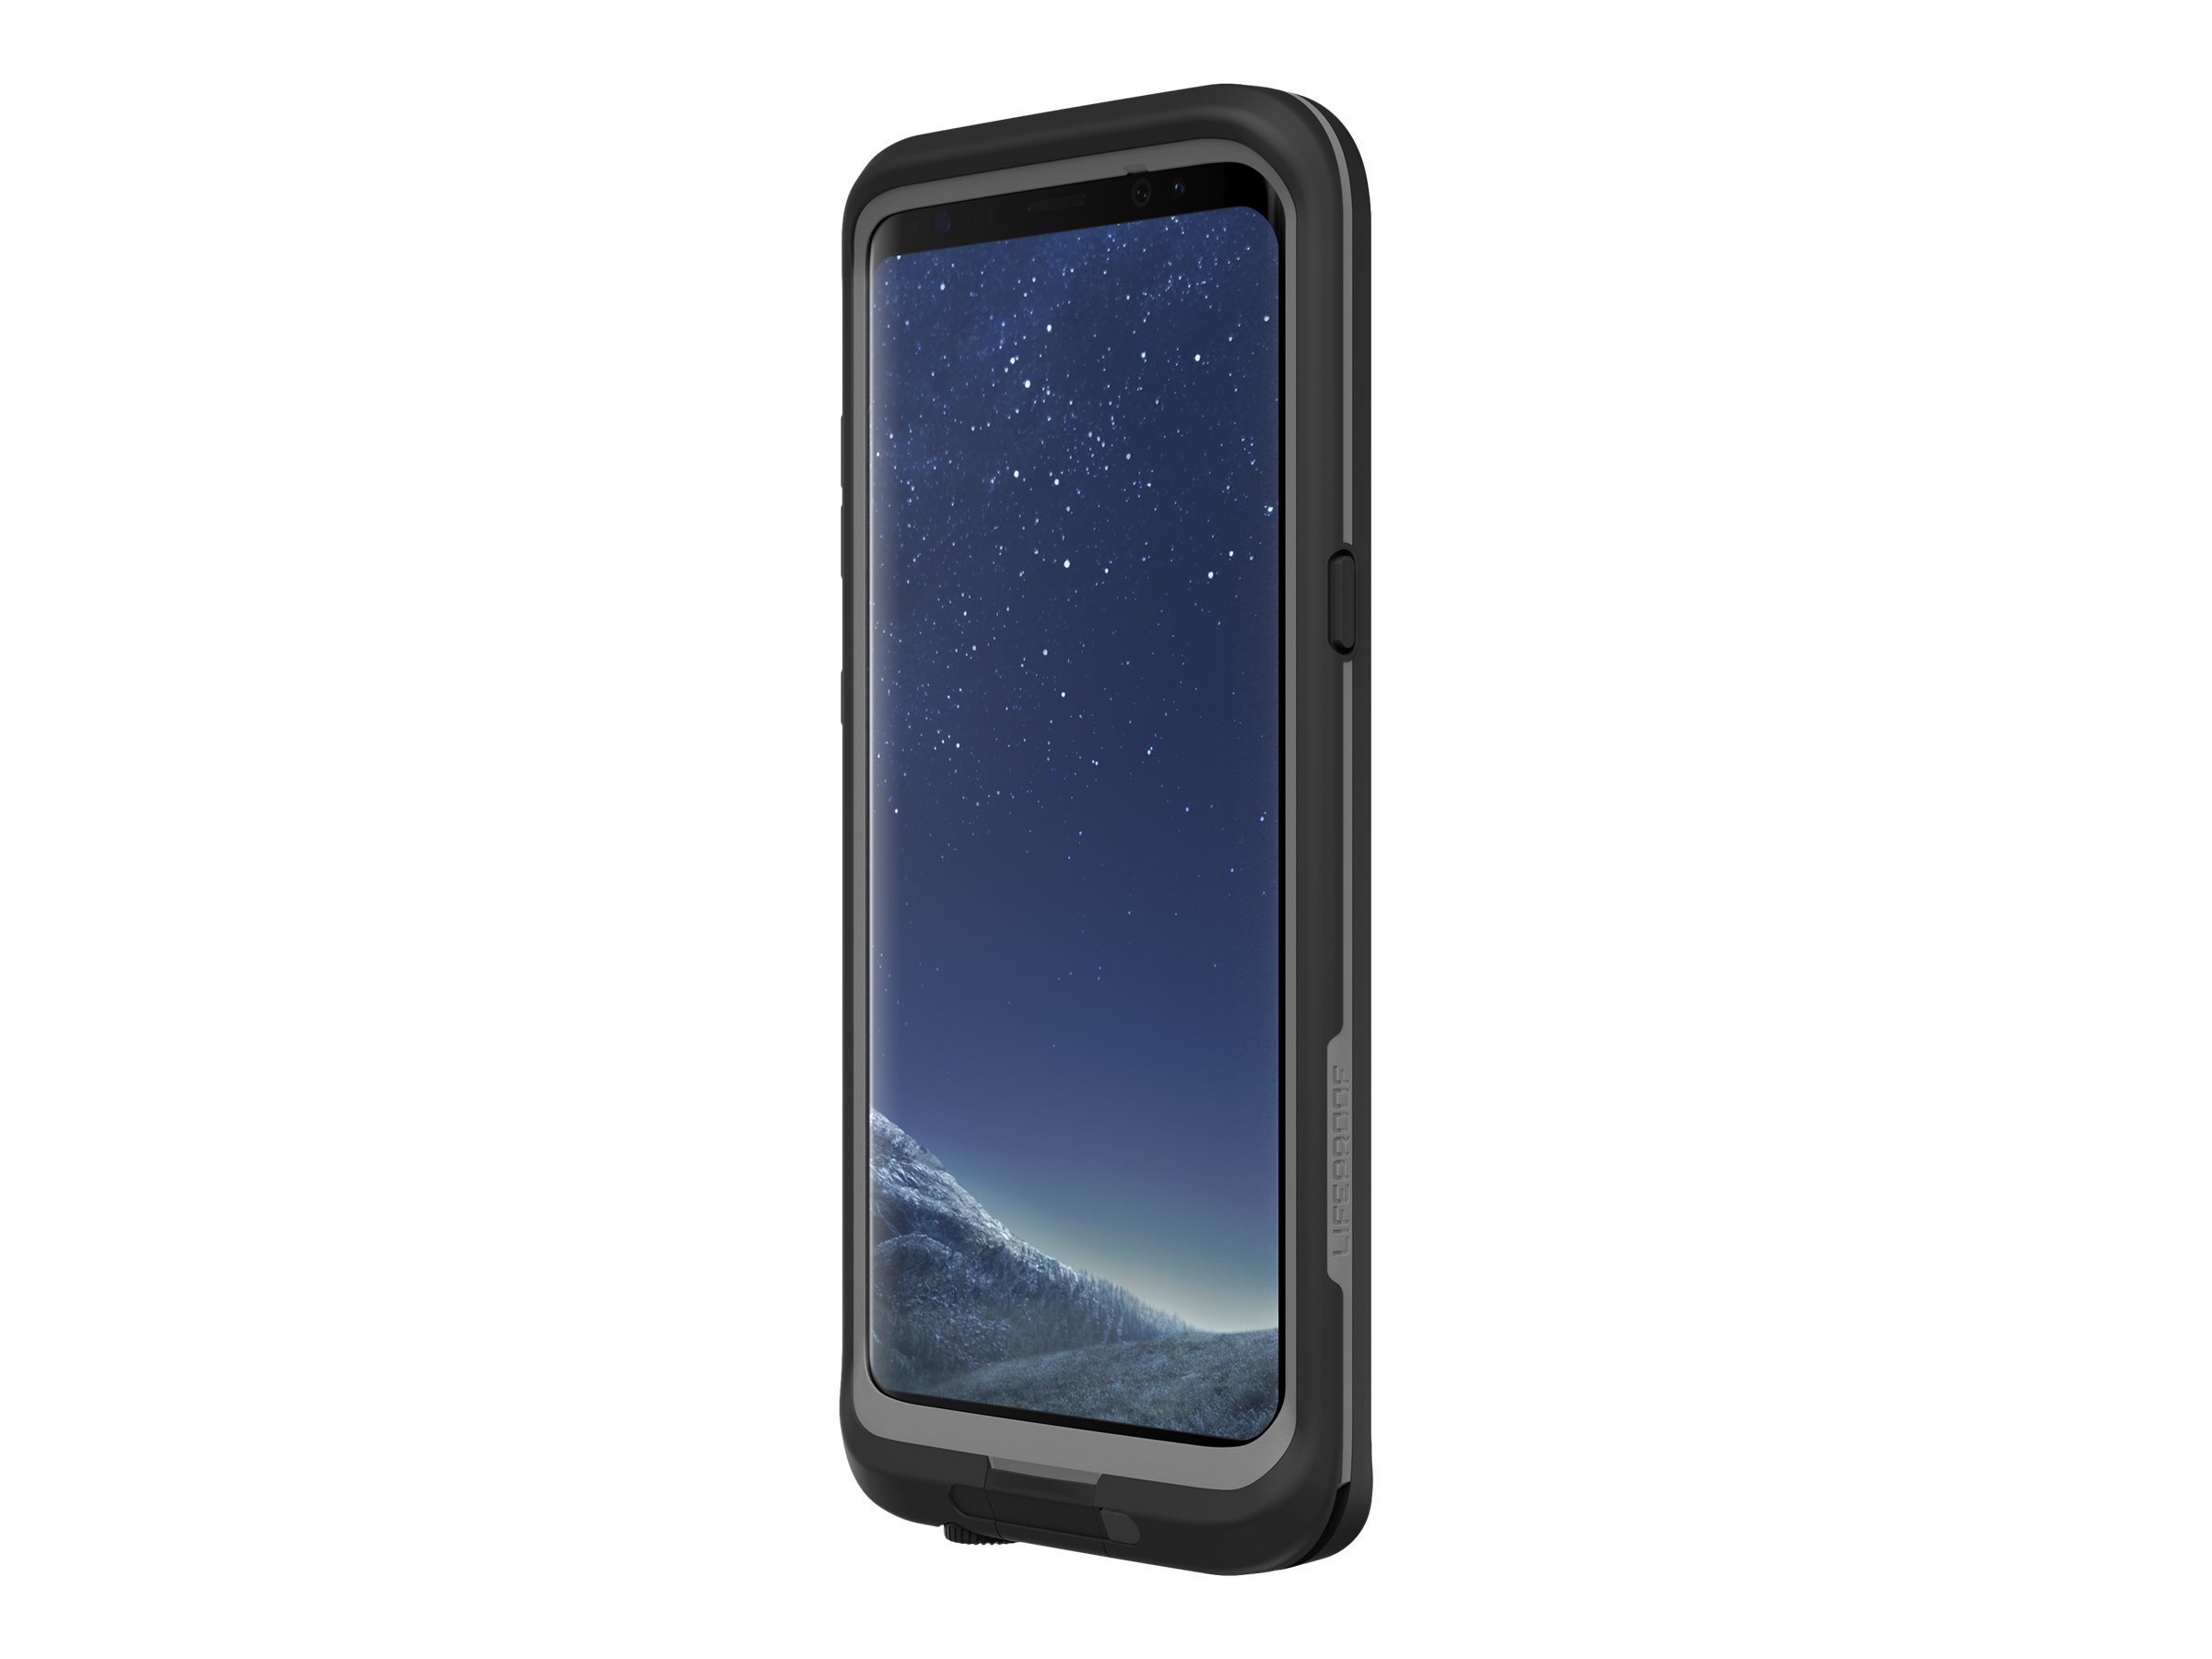 LifeProof Fre Samsung GALAXY S8+ - protective waterproof case for cell phone